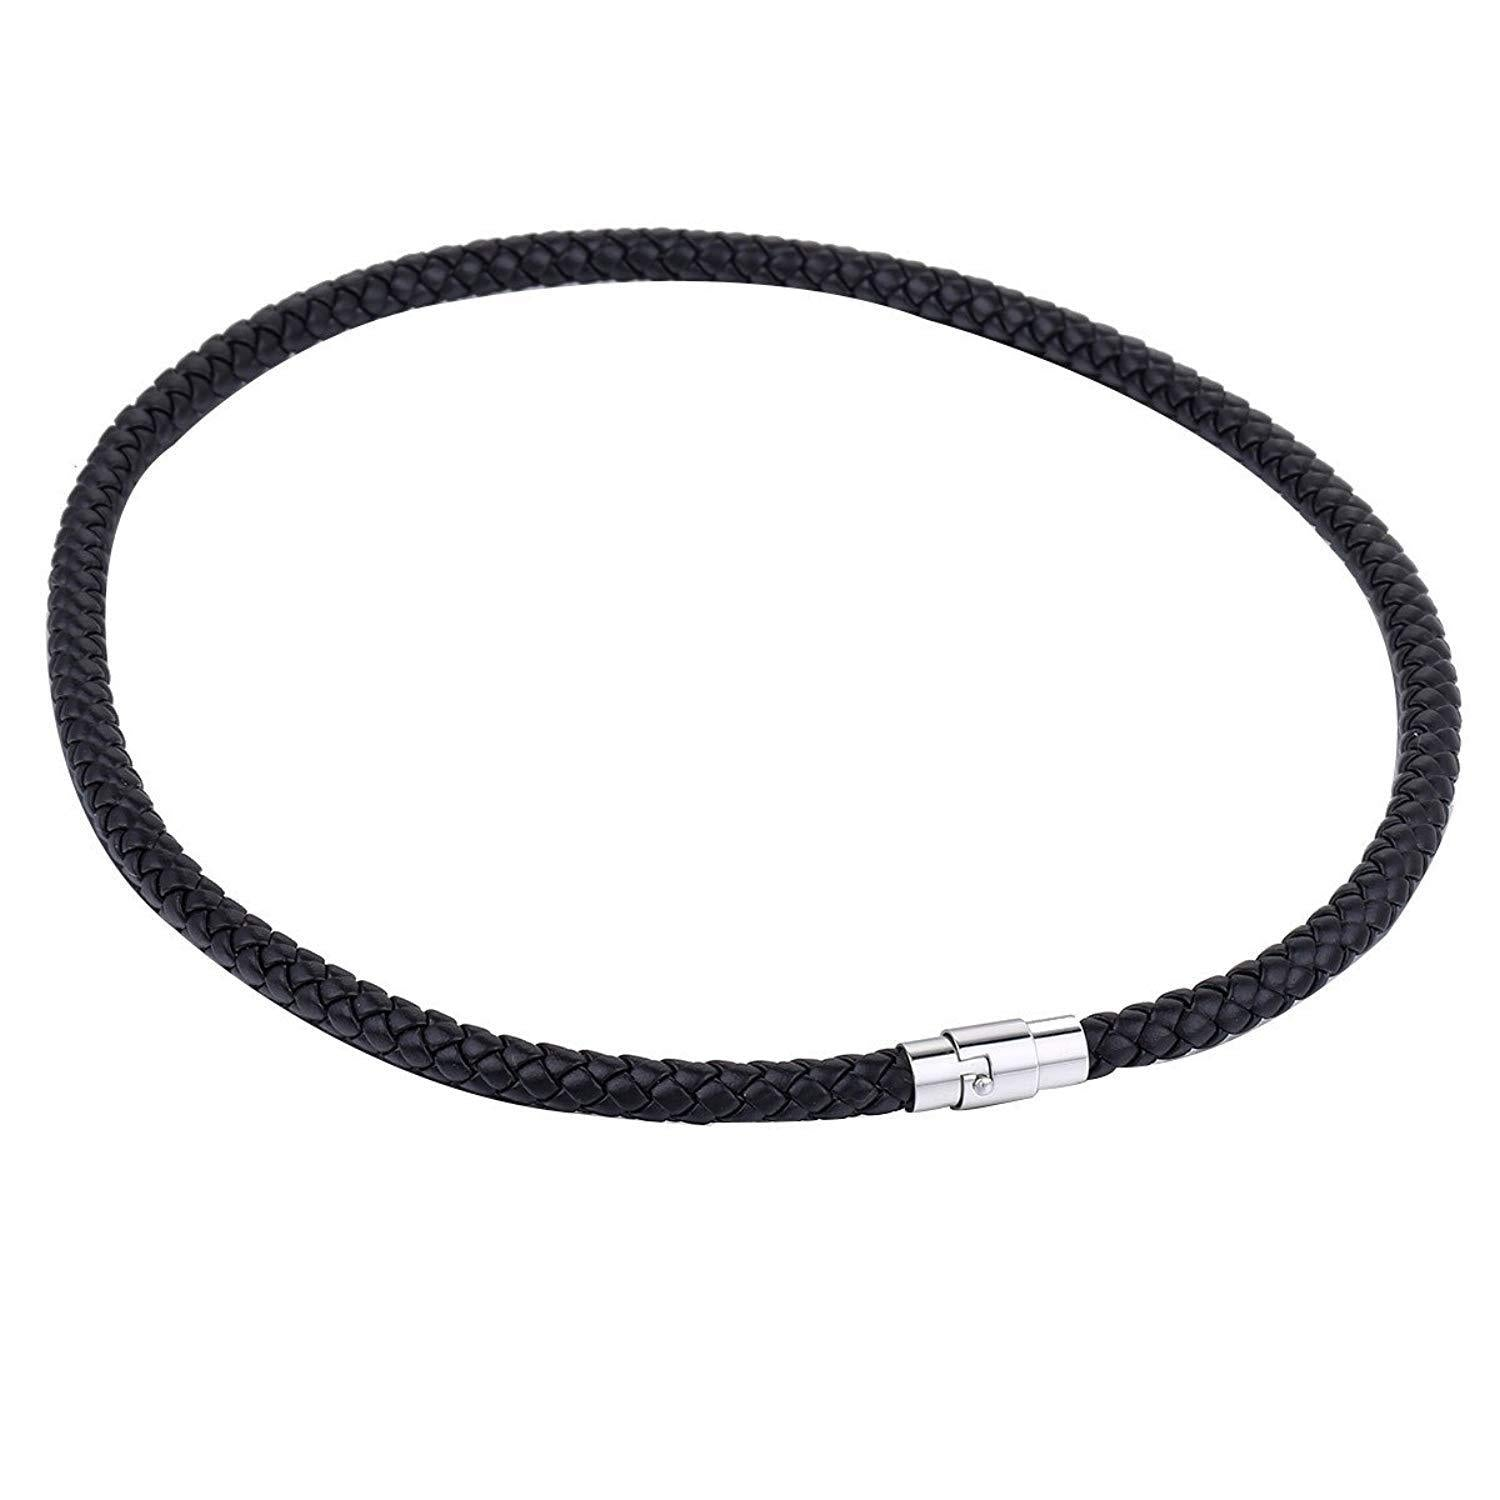 Trendsmax 6mm Black Braided Cord Rope Man-Made Leather Necklace Bracelet Stainless Steel Clasp One Piece